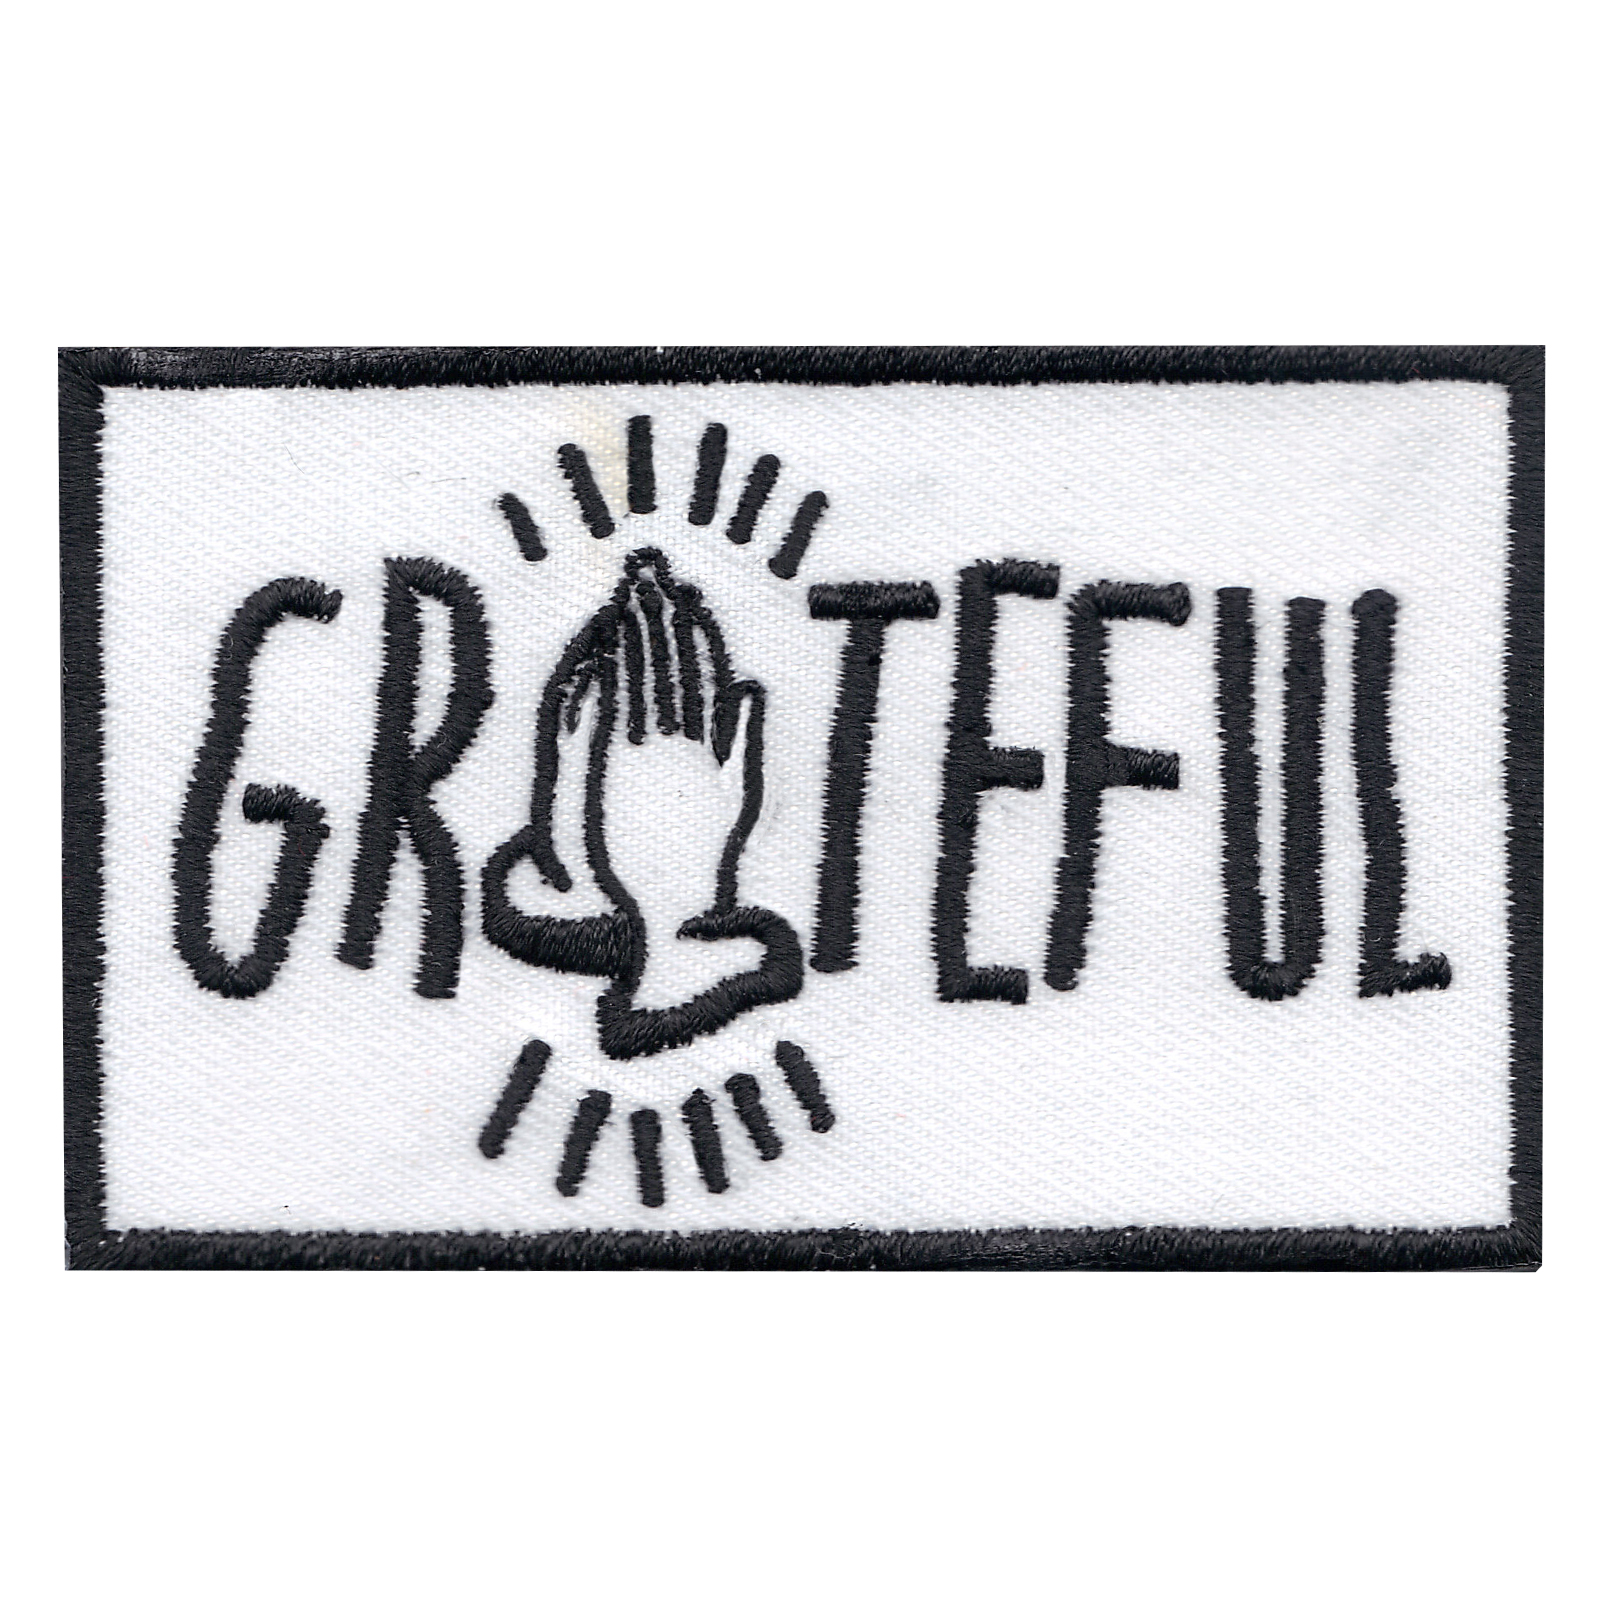 Praying Hands Grateful Iron On Applique Patch